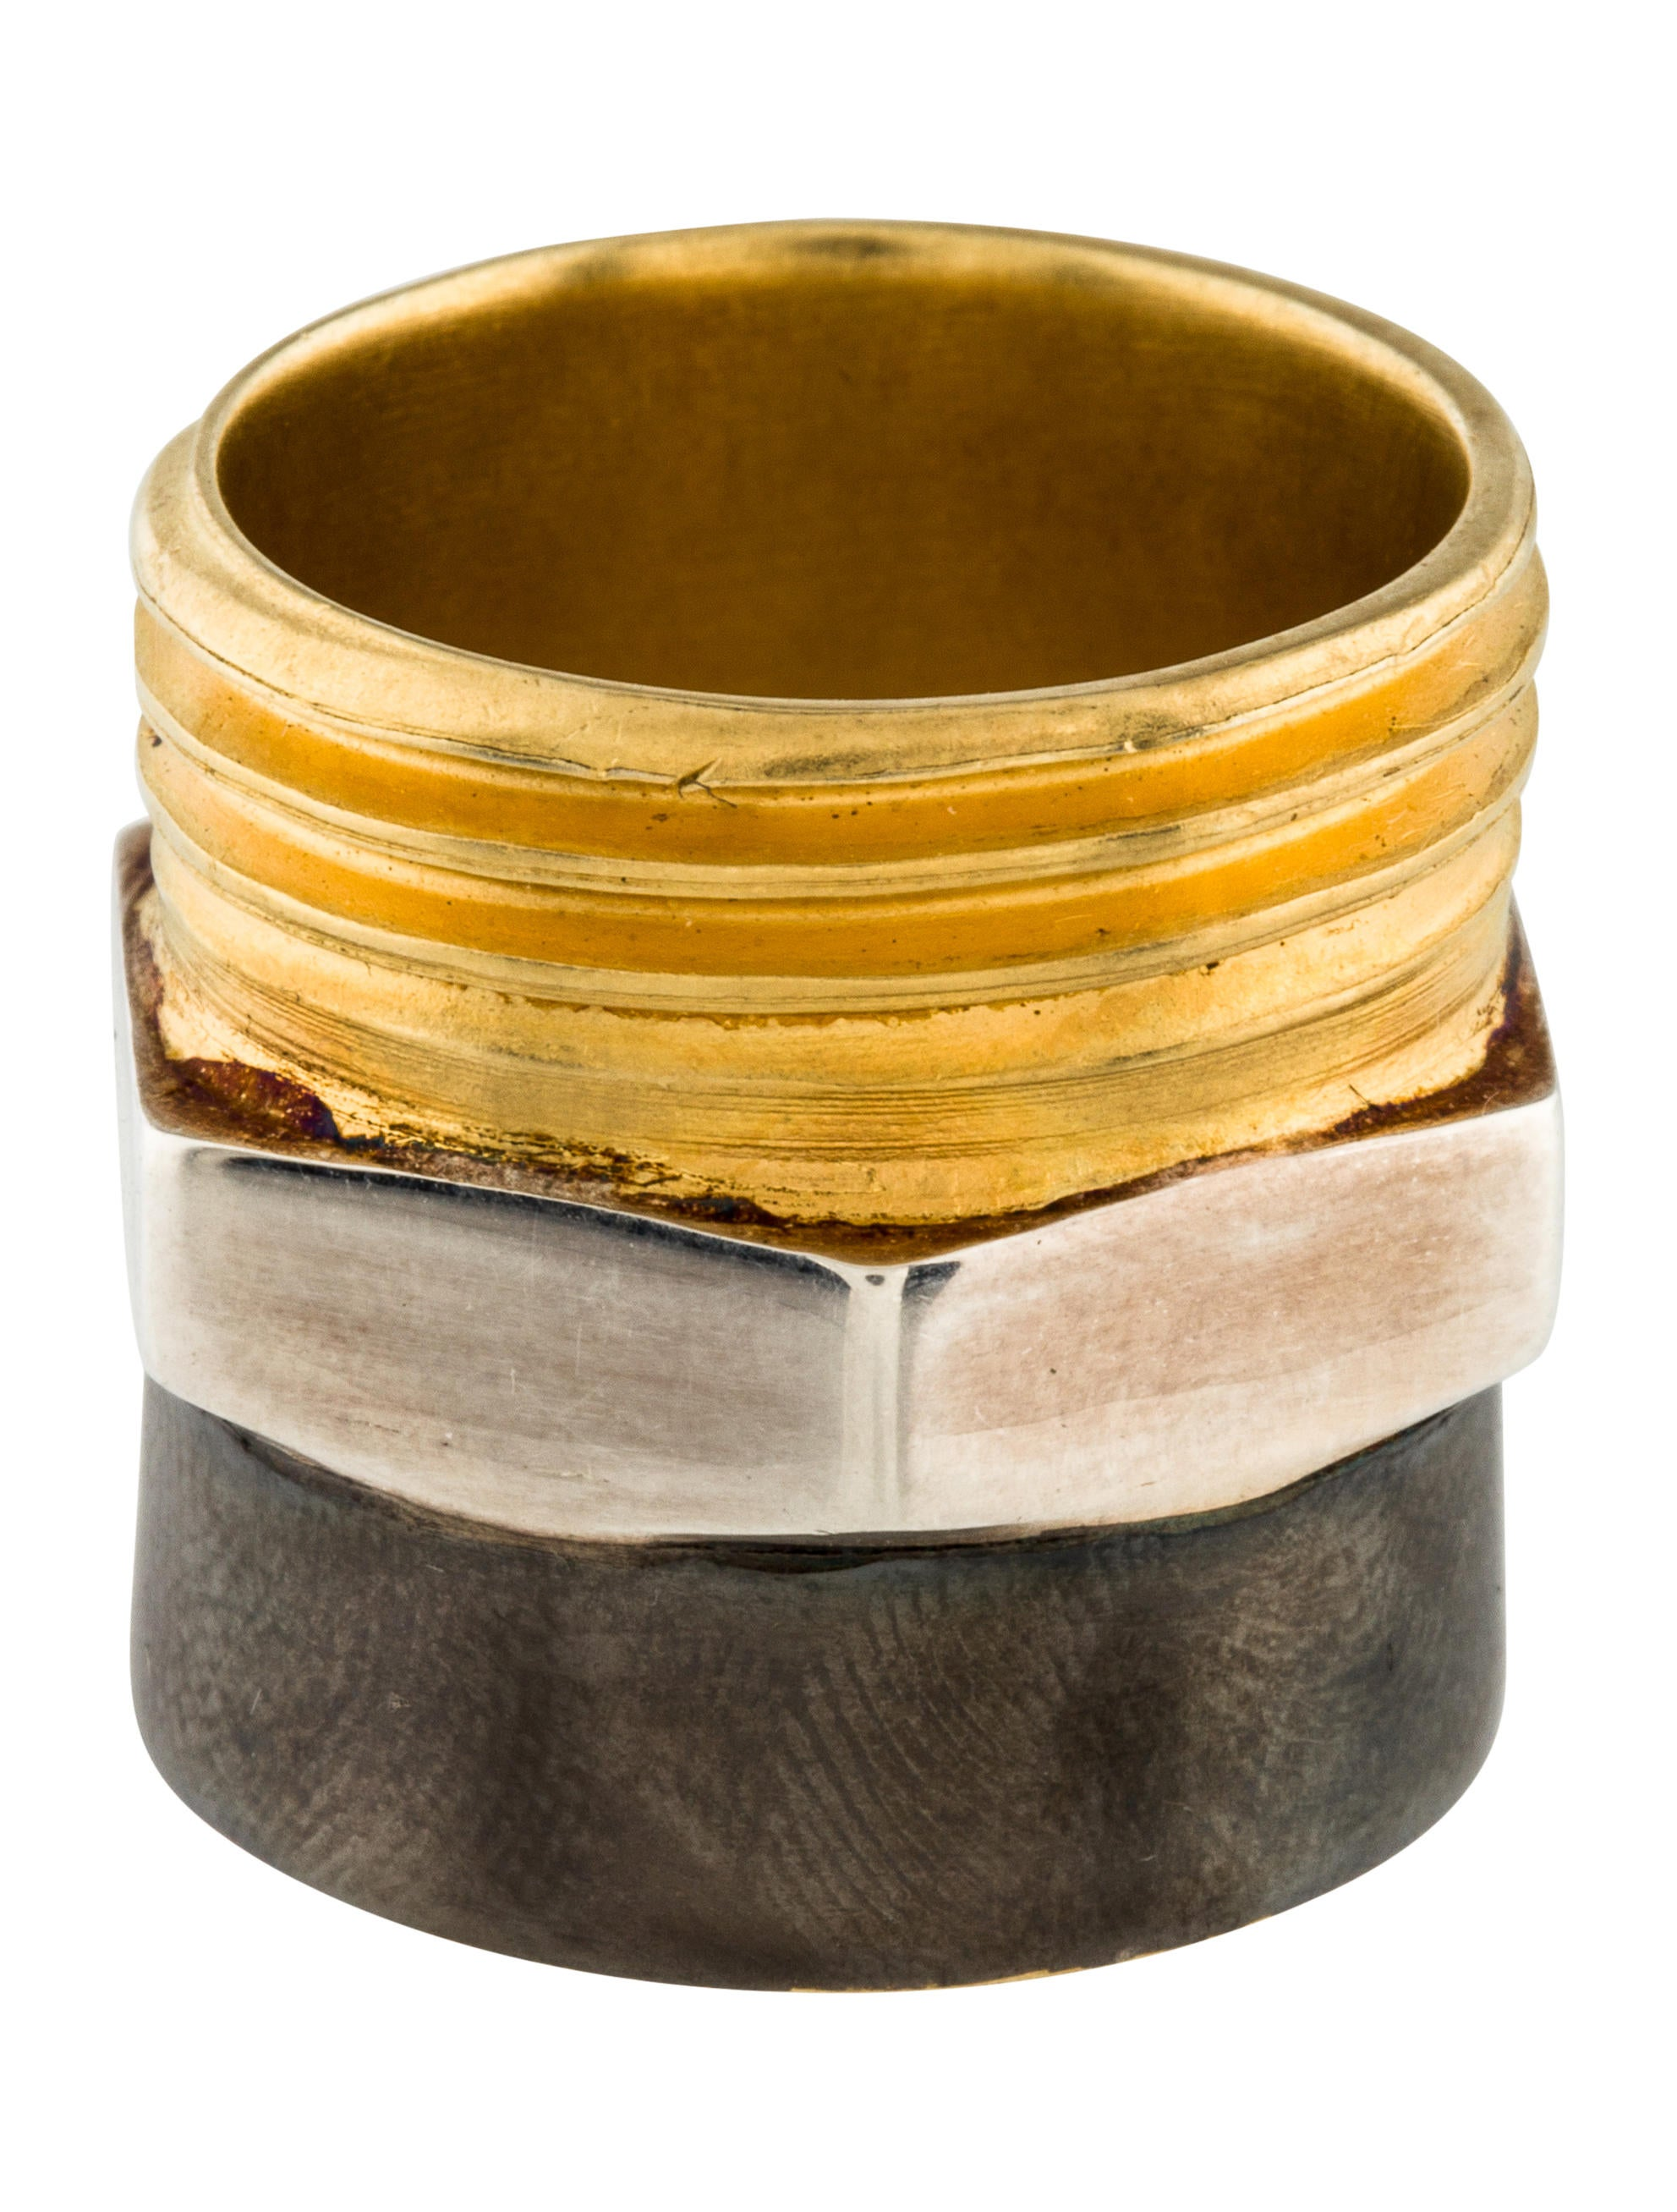 Maison Margiela Plumbing Ring - Rings - MAI32107 | The RealReal